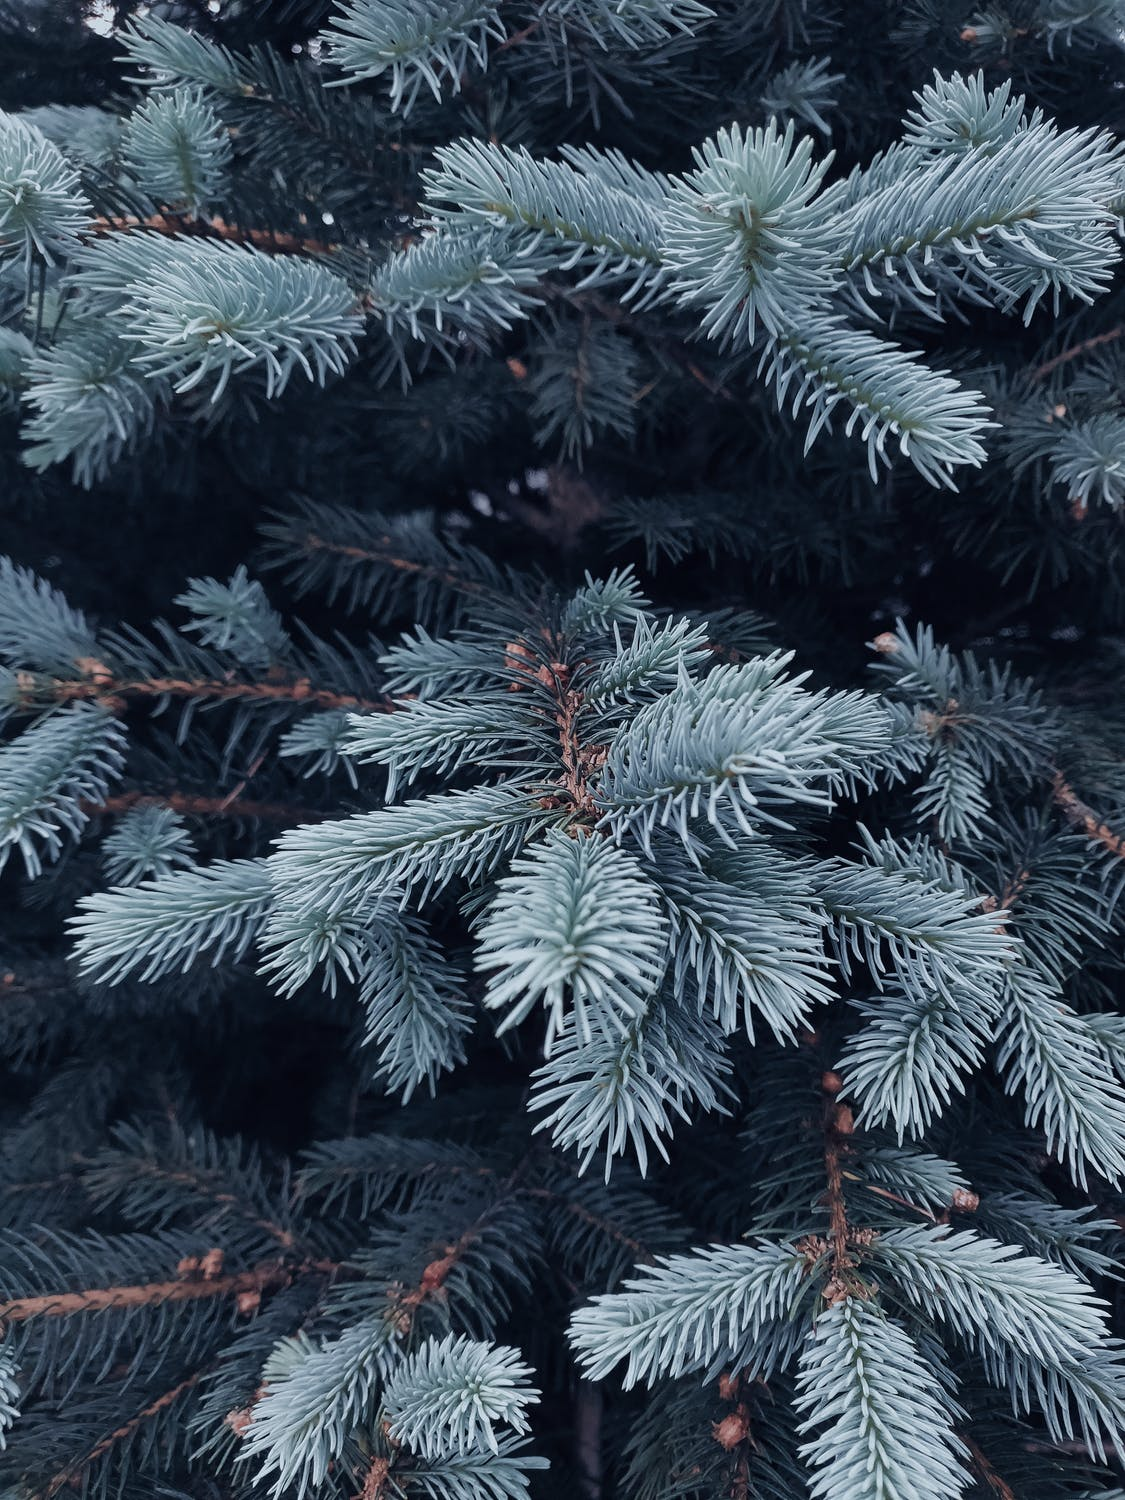 Christmas tree aesthetic wallpaper for iphone